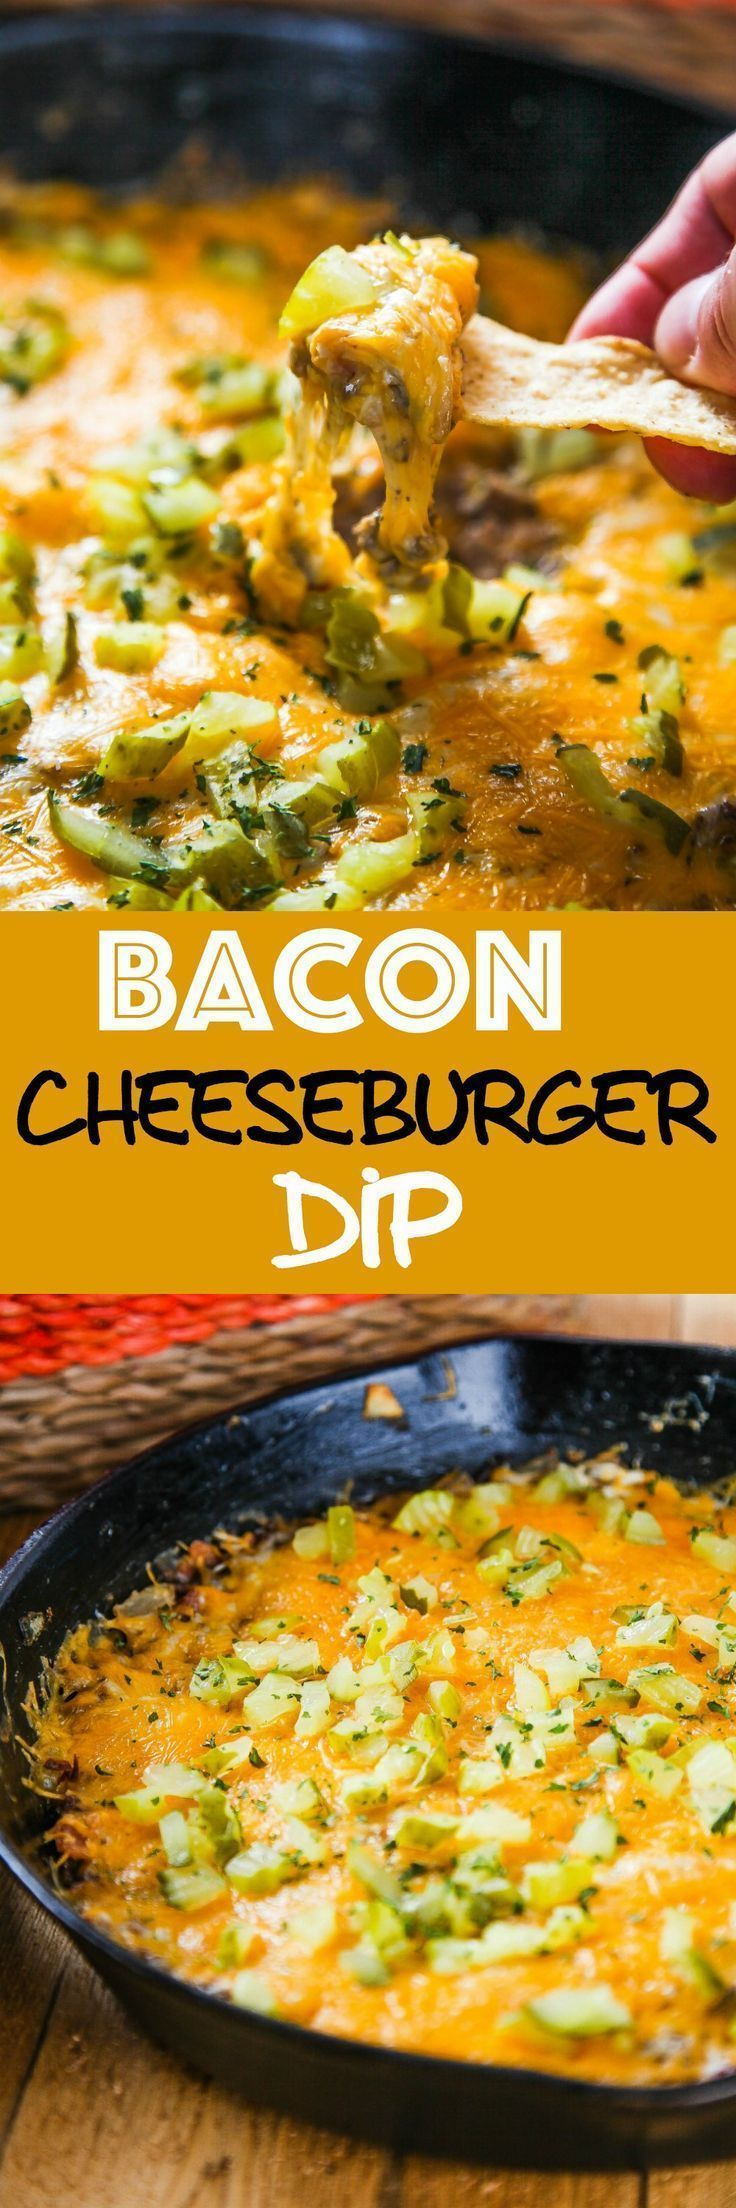 Bacon Cheeseburger Dip: Creamy cheese, crispy bacon, and flavorful ground beef come together in thi